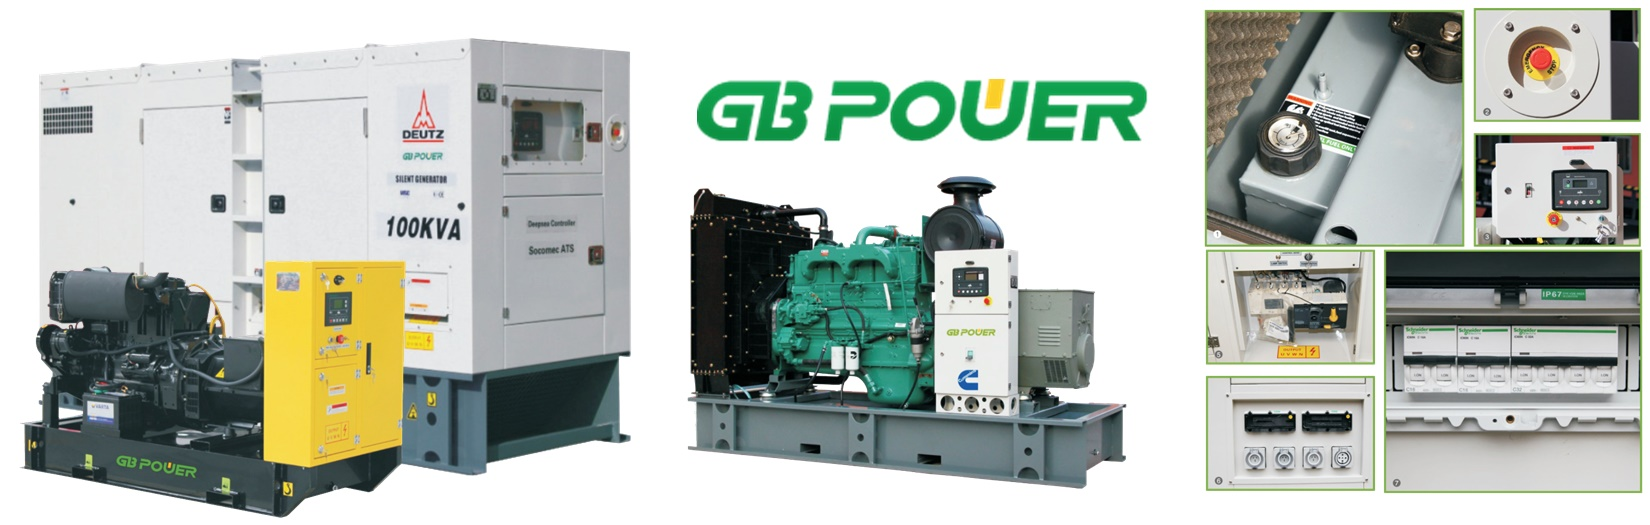 GB POWER GENERATOR